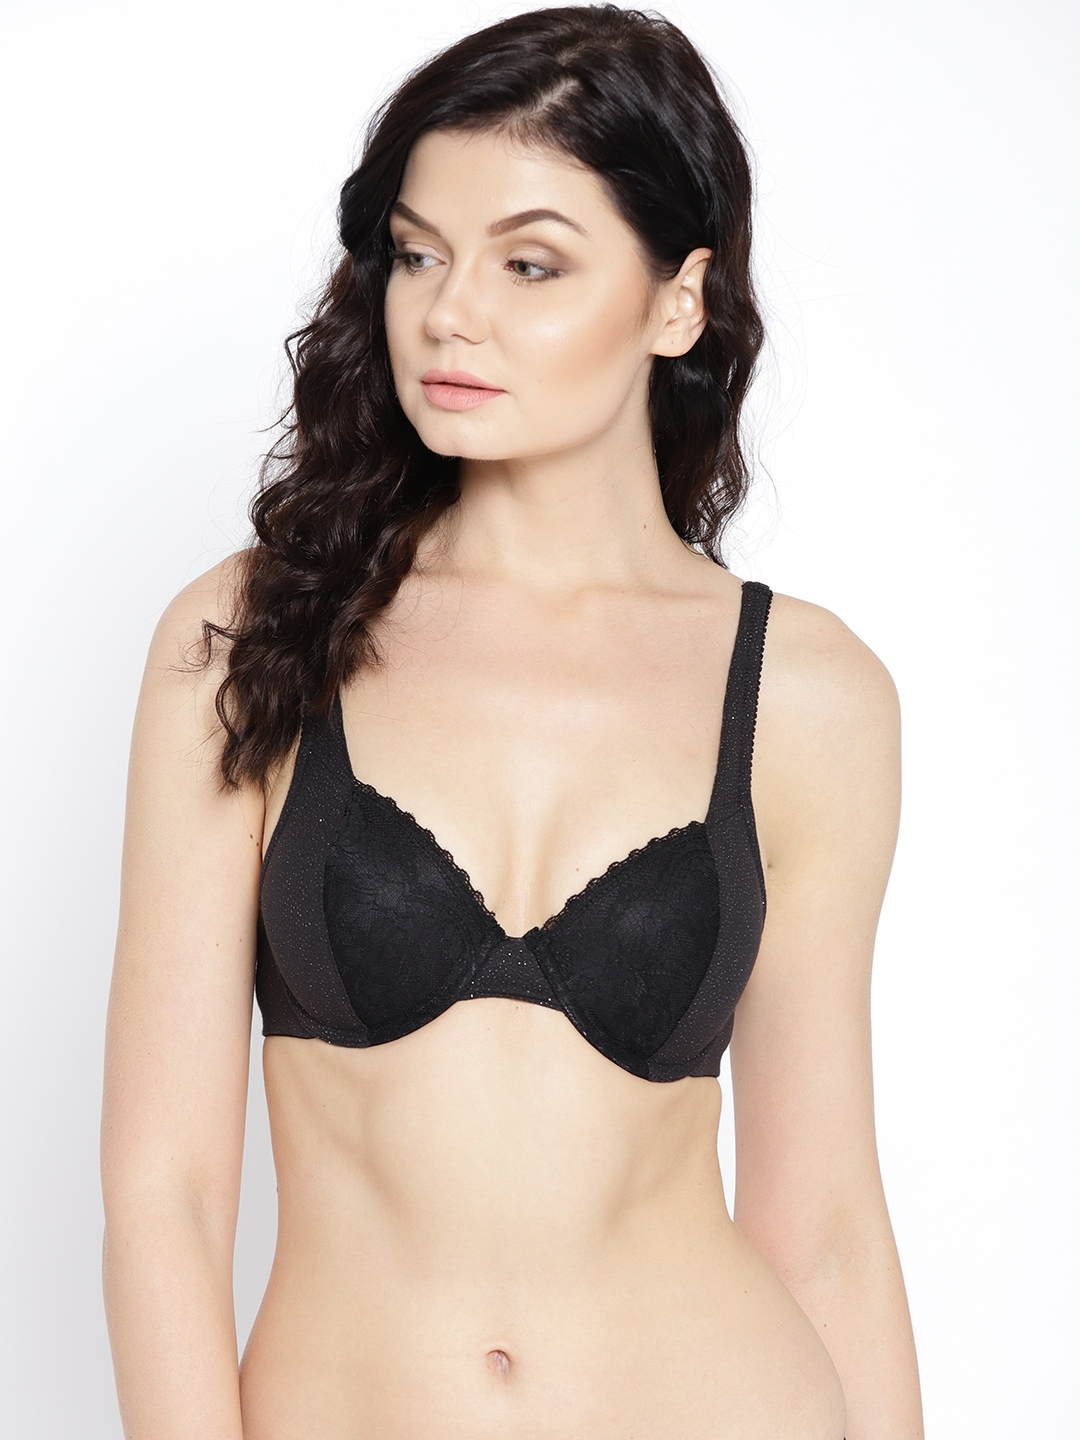 bde714a272e44 Clovia Black Solid Underwired Heavily Padded Push-Up Bra BR1415P1340B